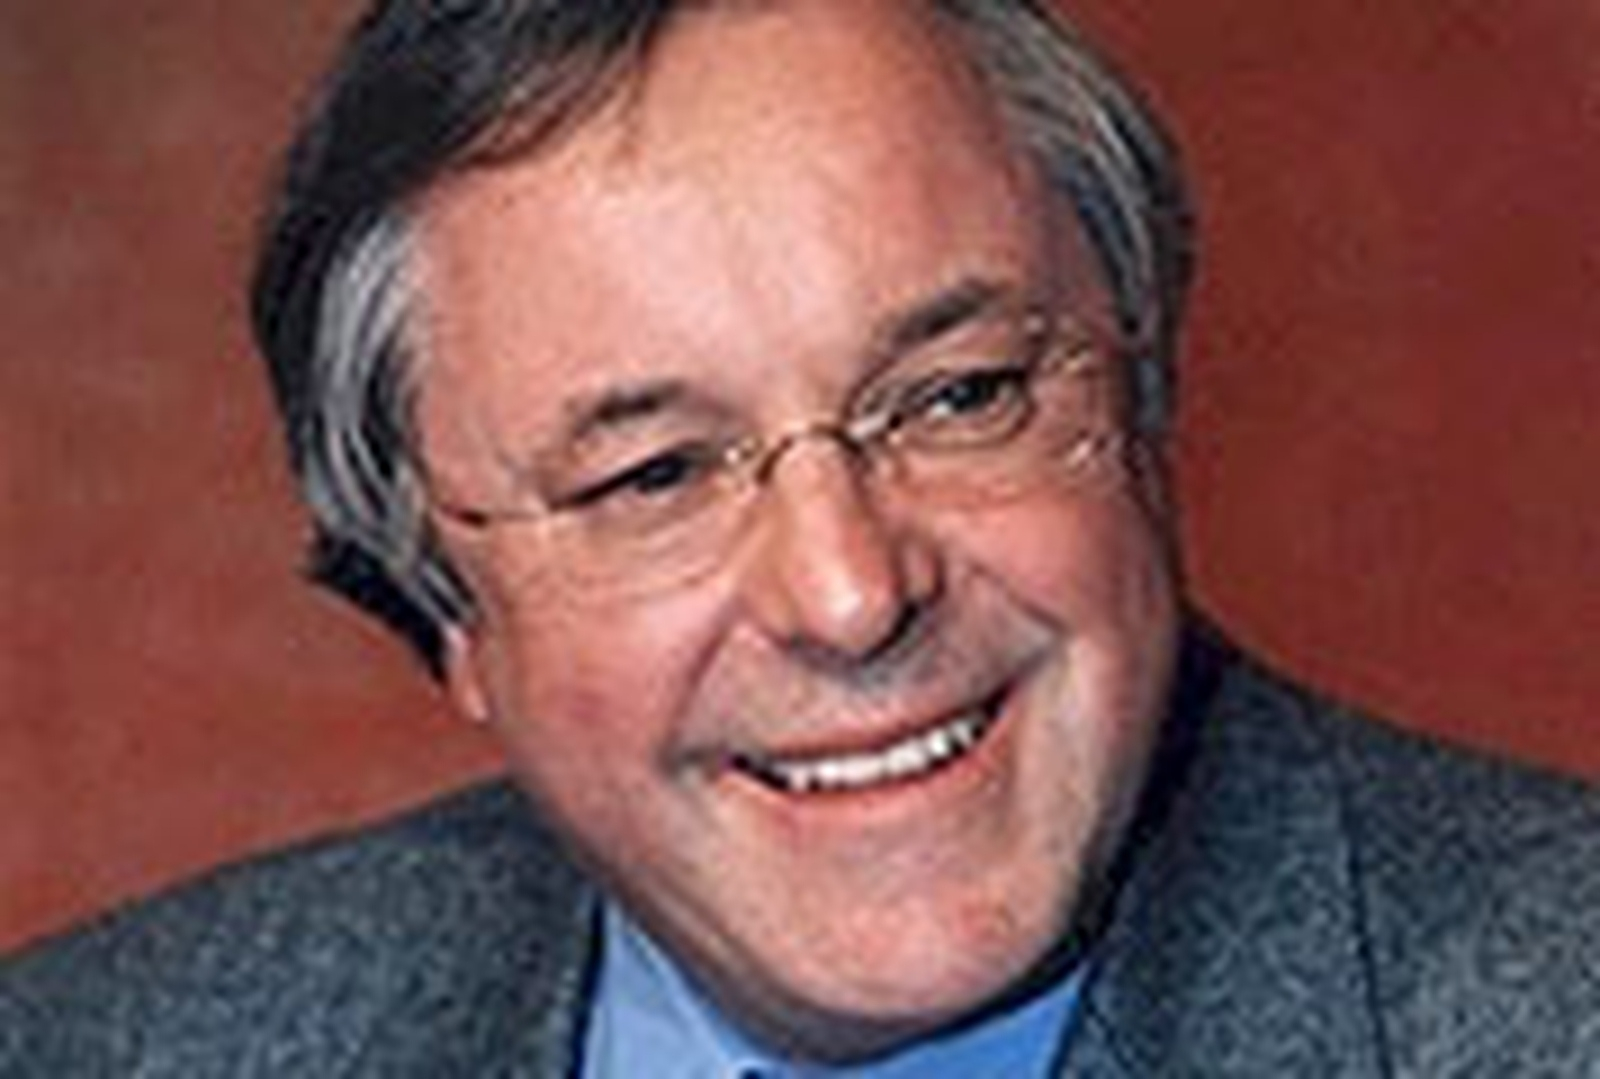 Memorial Service Planned For Countdown Host Calendar Countdown Richard Whiteley